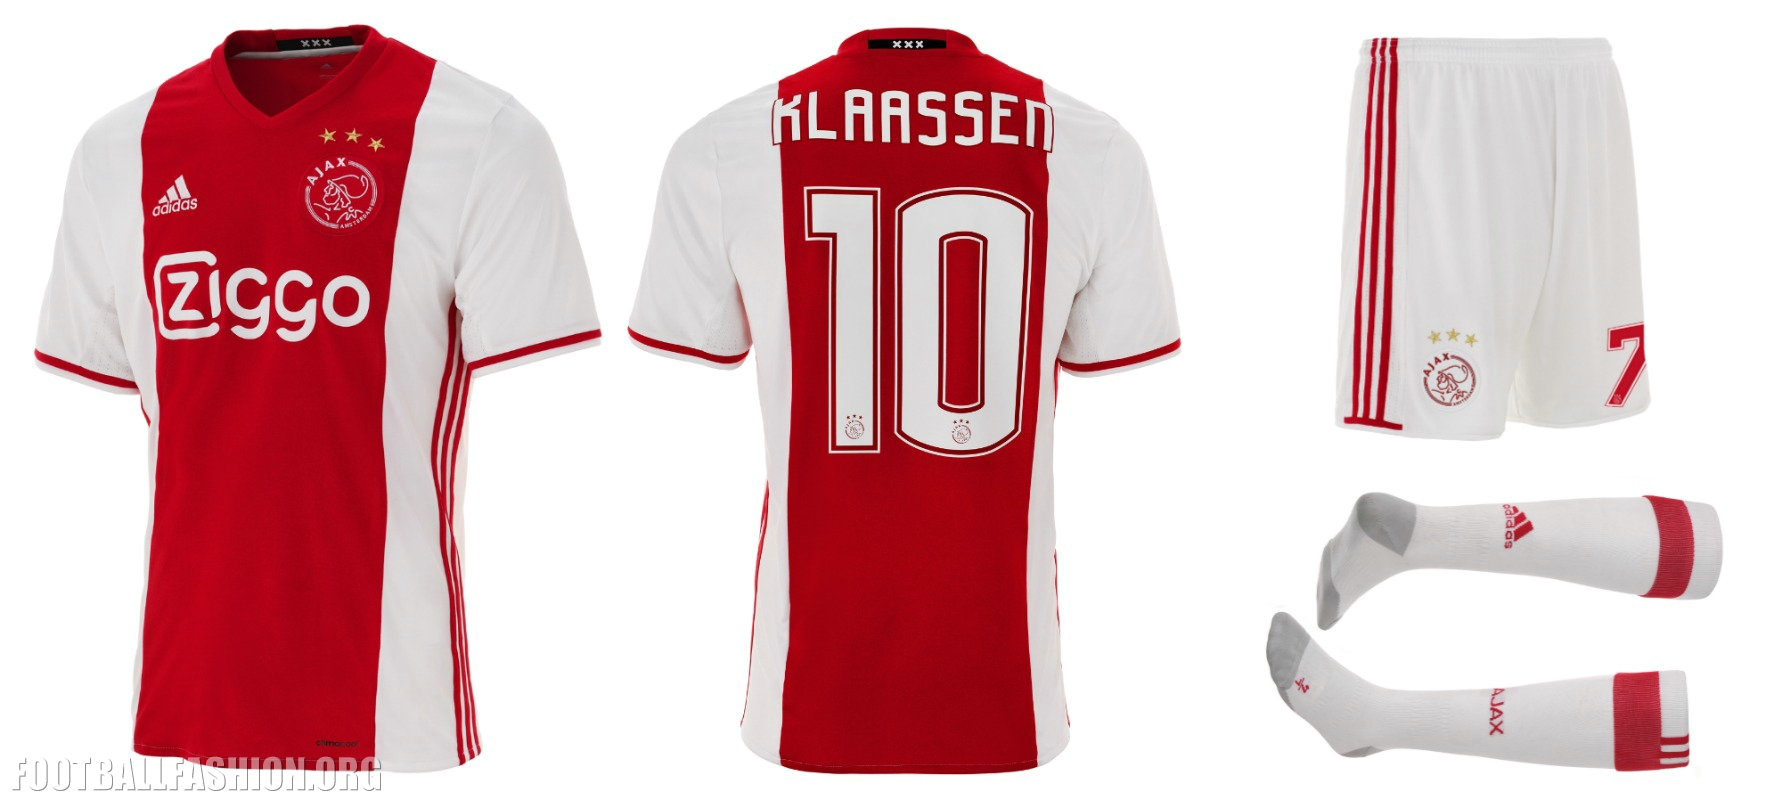 AFC Ajax 2016/17 adidas Home Kit – FOOTBALL FASHION.ORG